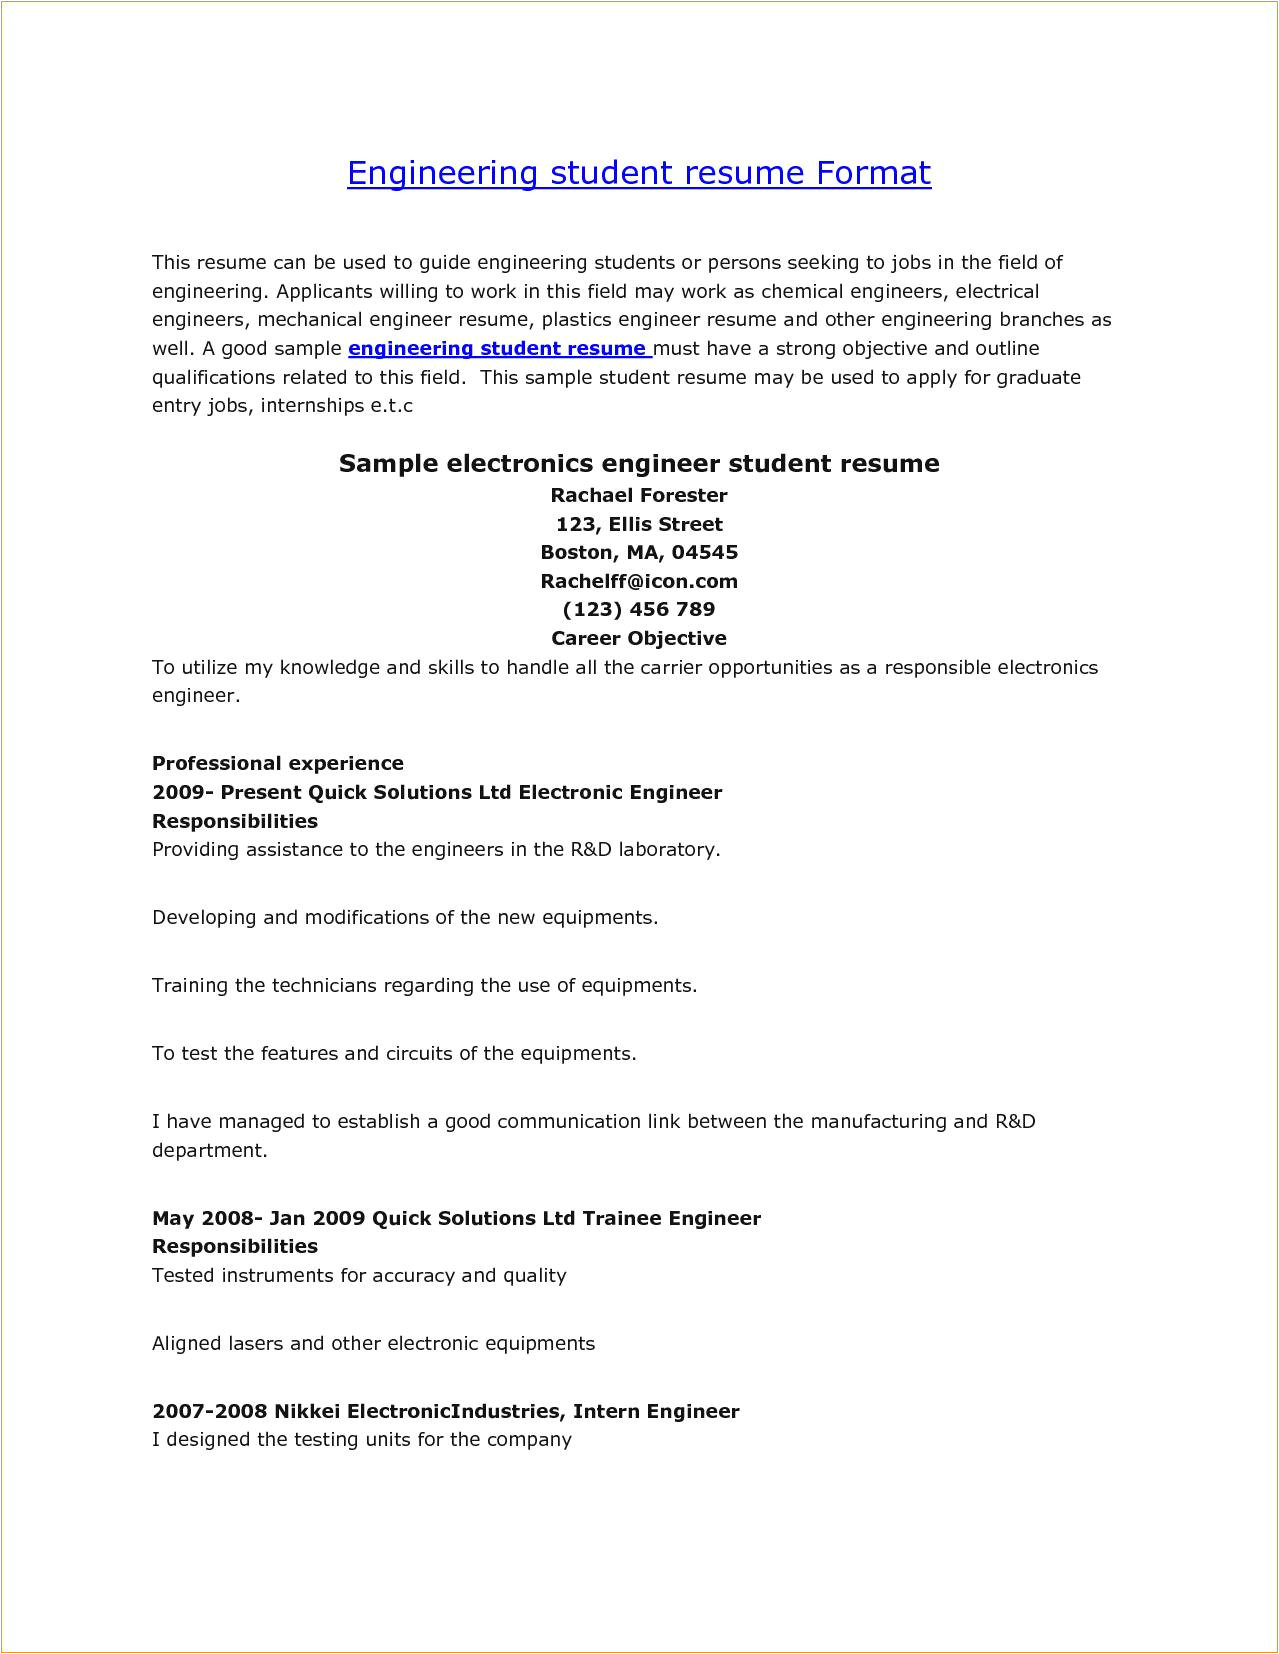 sample resume for ece engineering students fresh engineering students resumes madrat